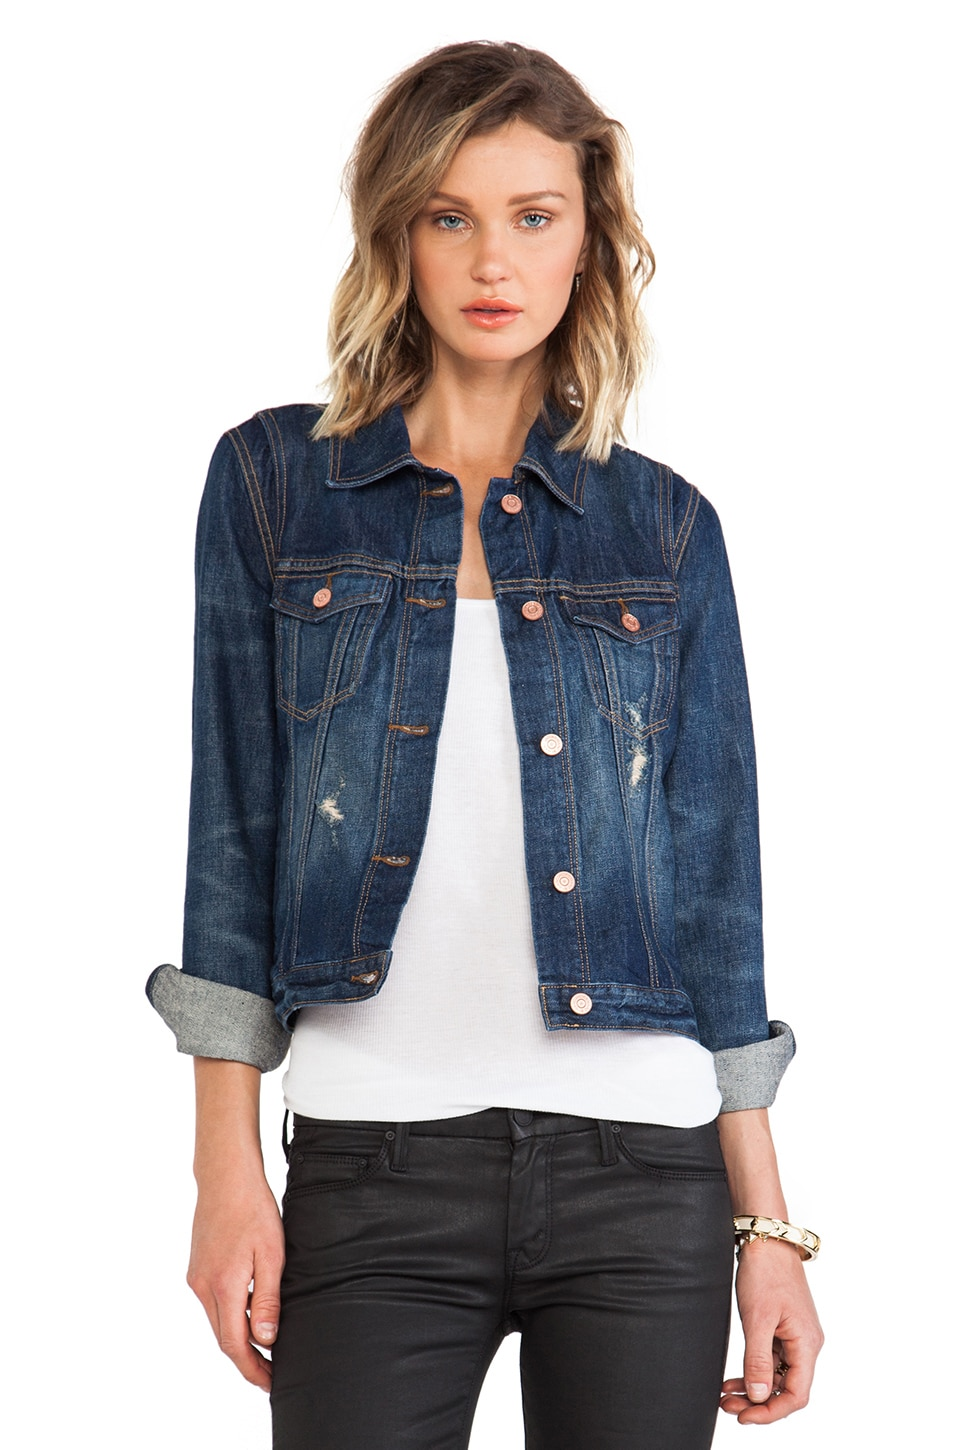 Marc by Marc Jacobs Pieced Denim Jacket in Milly